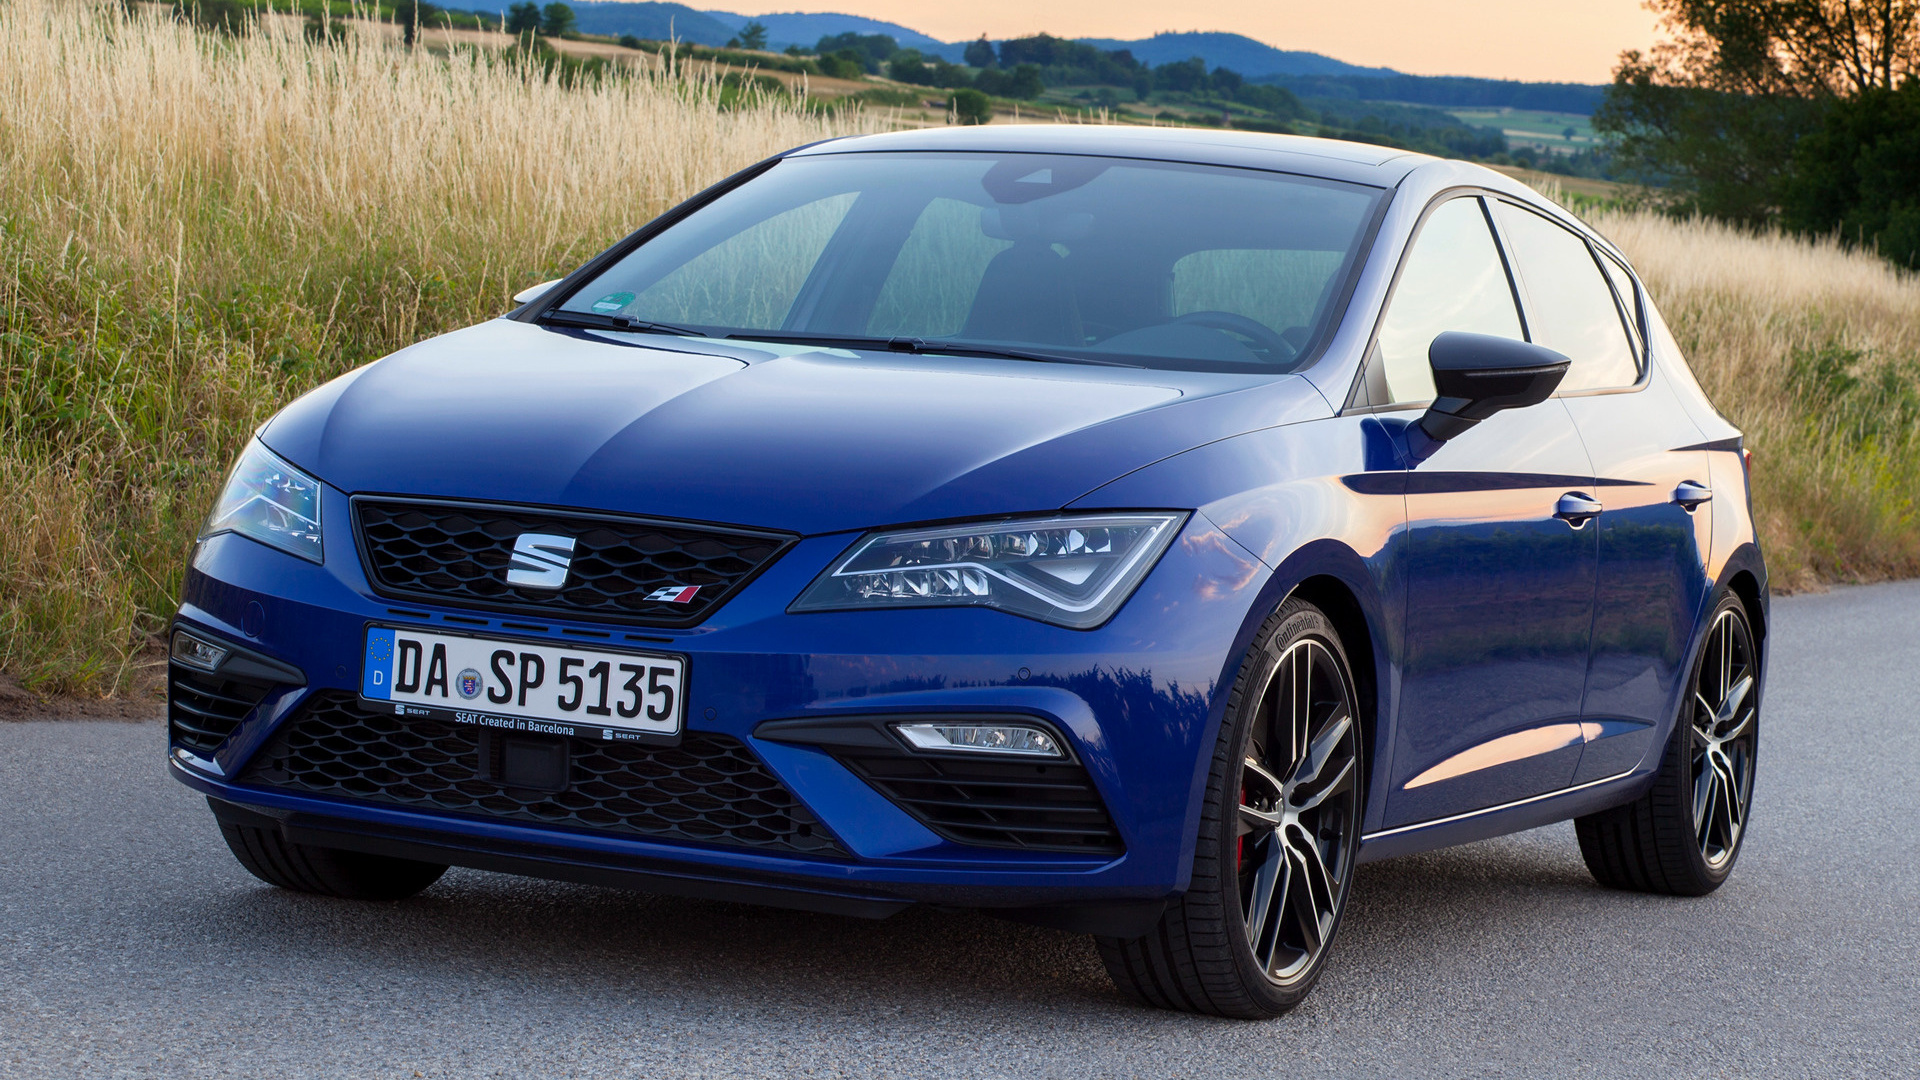 seat leon cupra 300 2017 wallpapers and hd images car. Black Bedroom Furniture Sets. Home Design Ideas